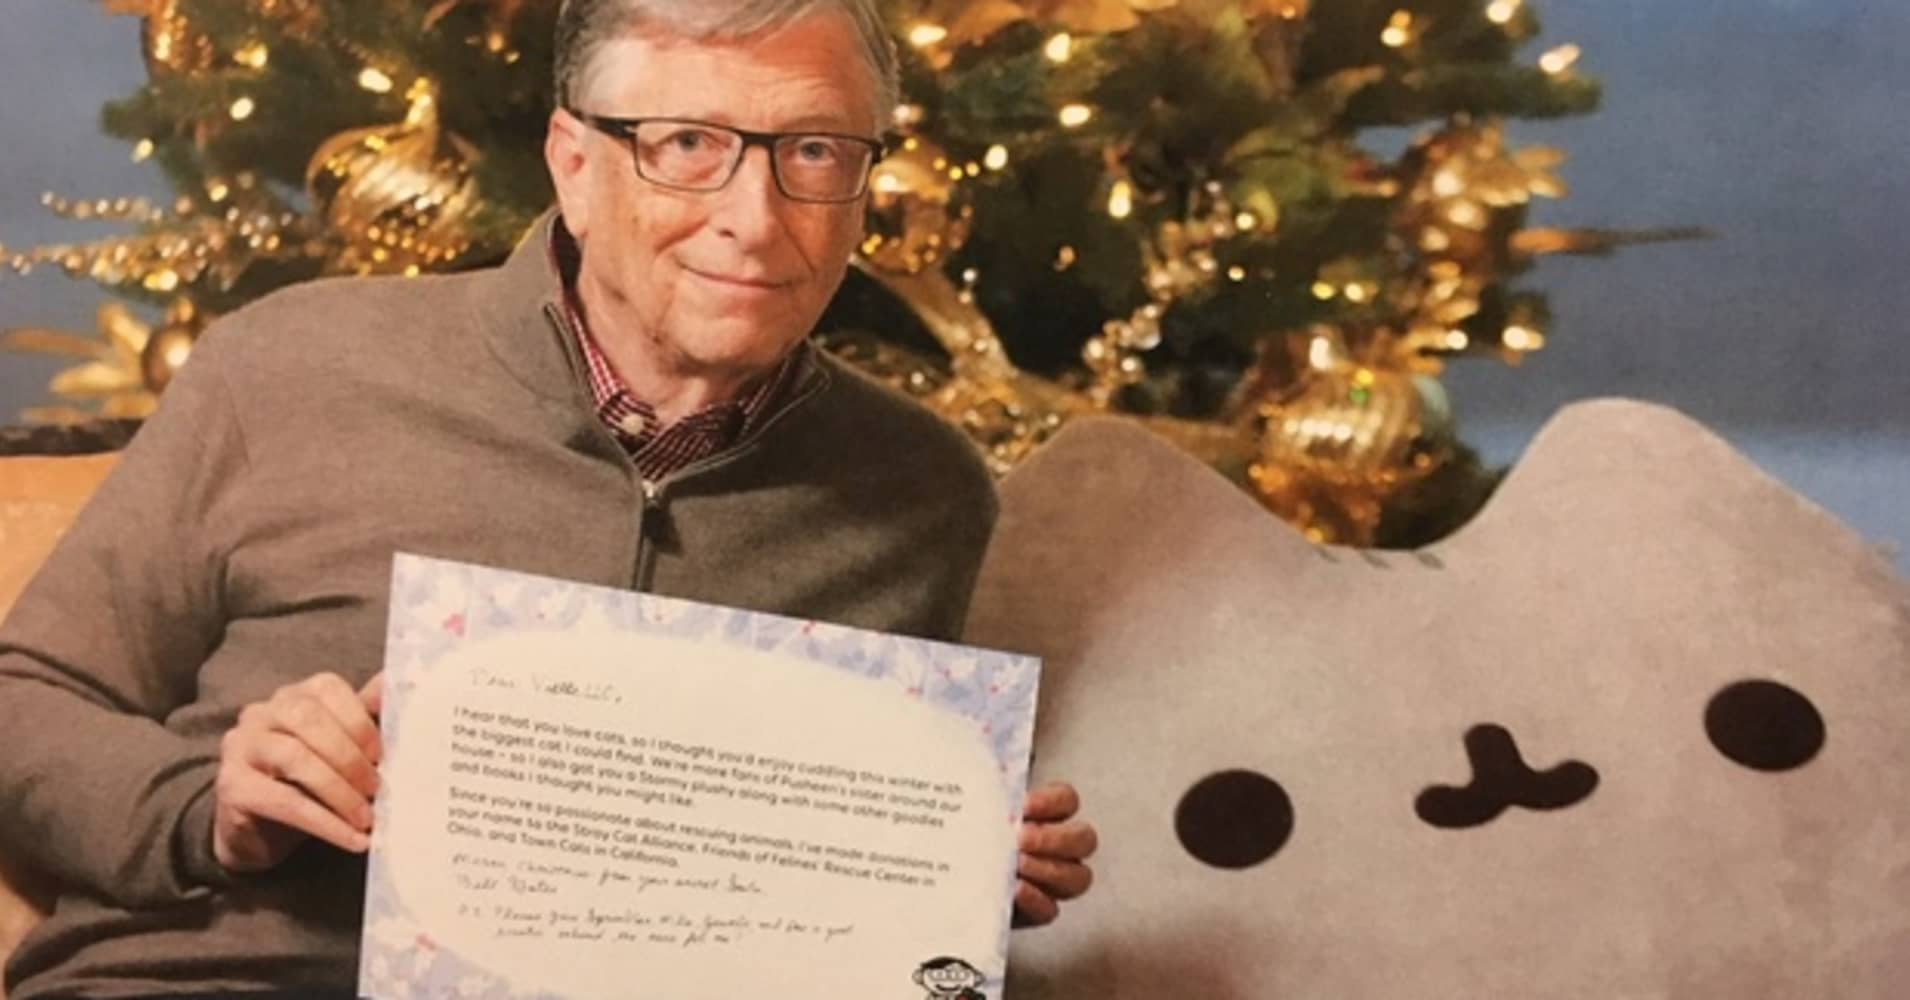 Bill Gates posing with the stuffed cat he gave his reddit Secret Santa, among many other generous gifts.